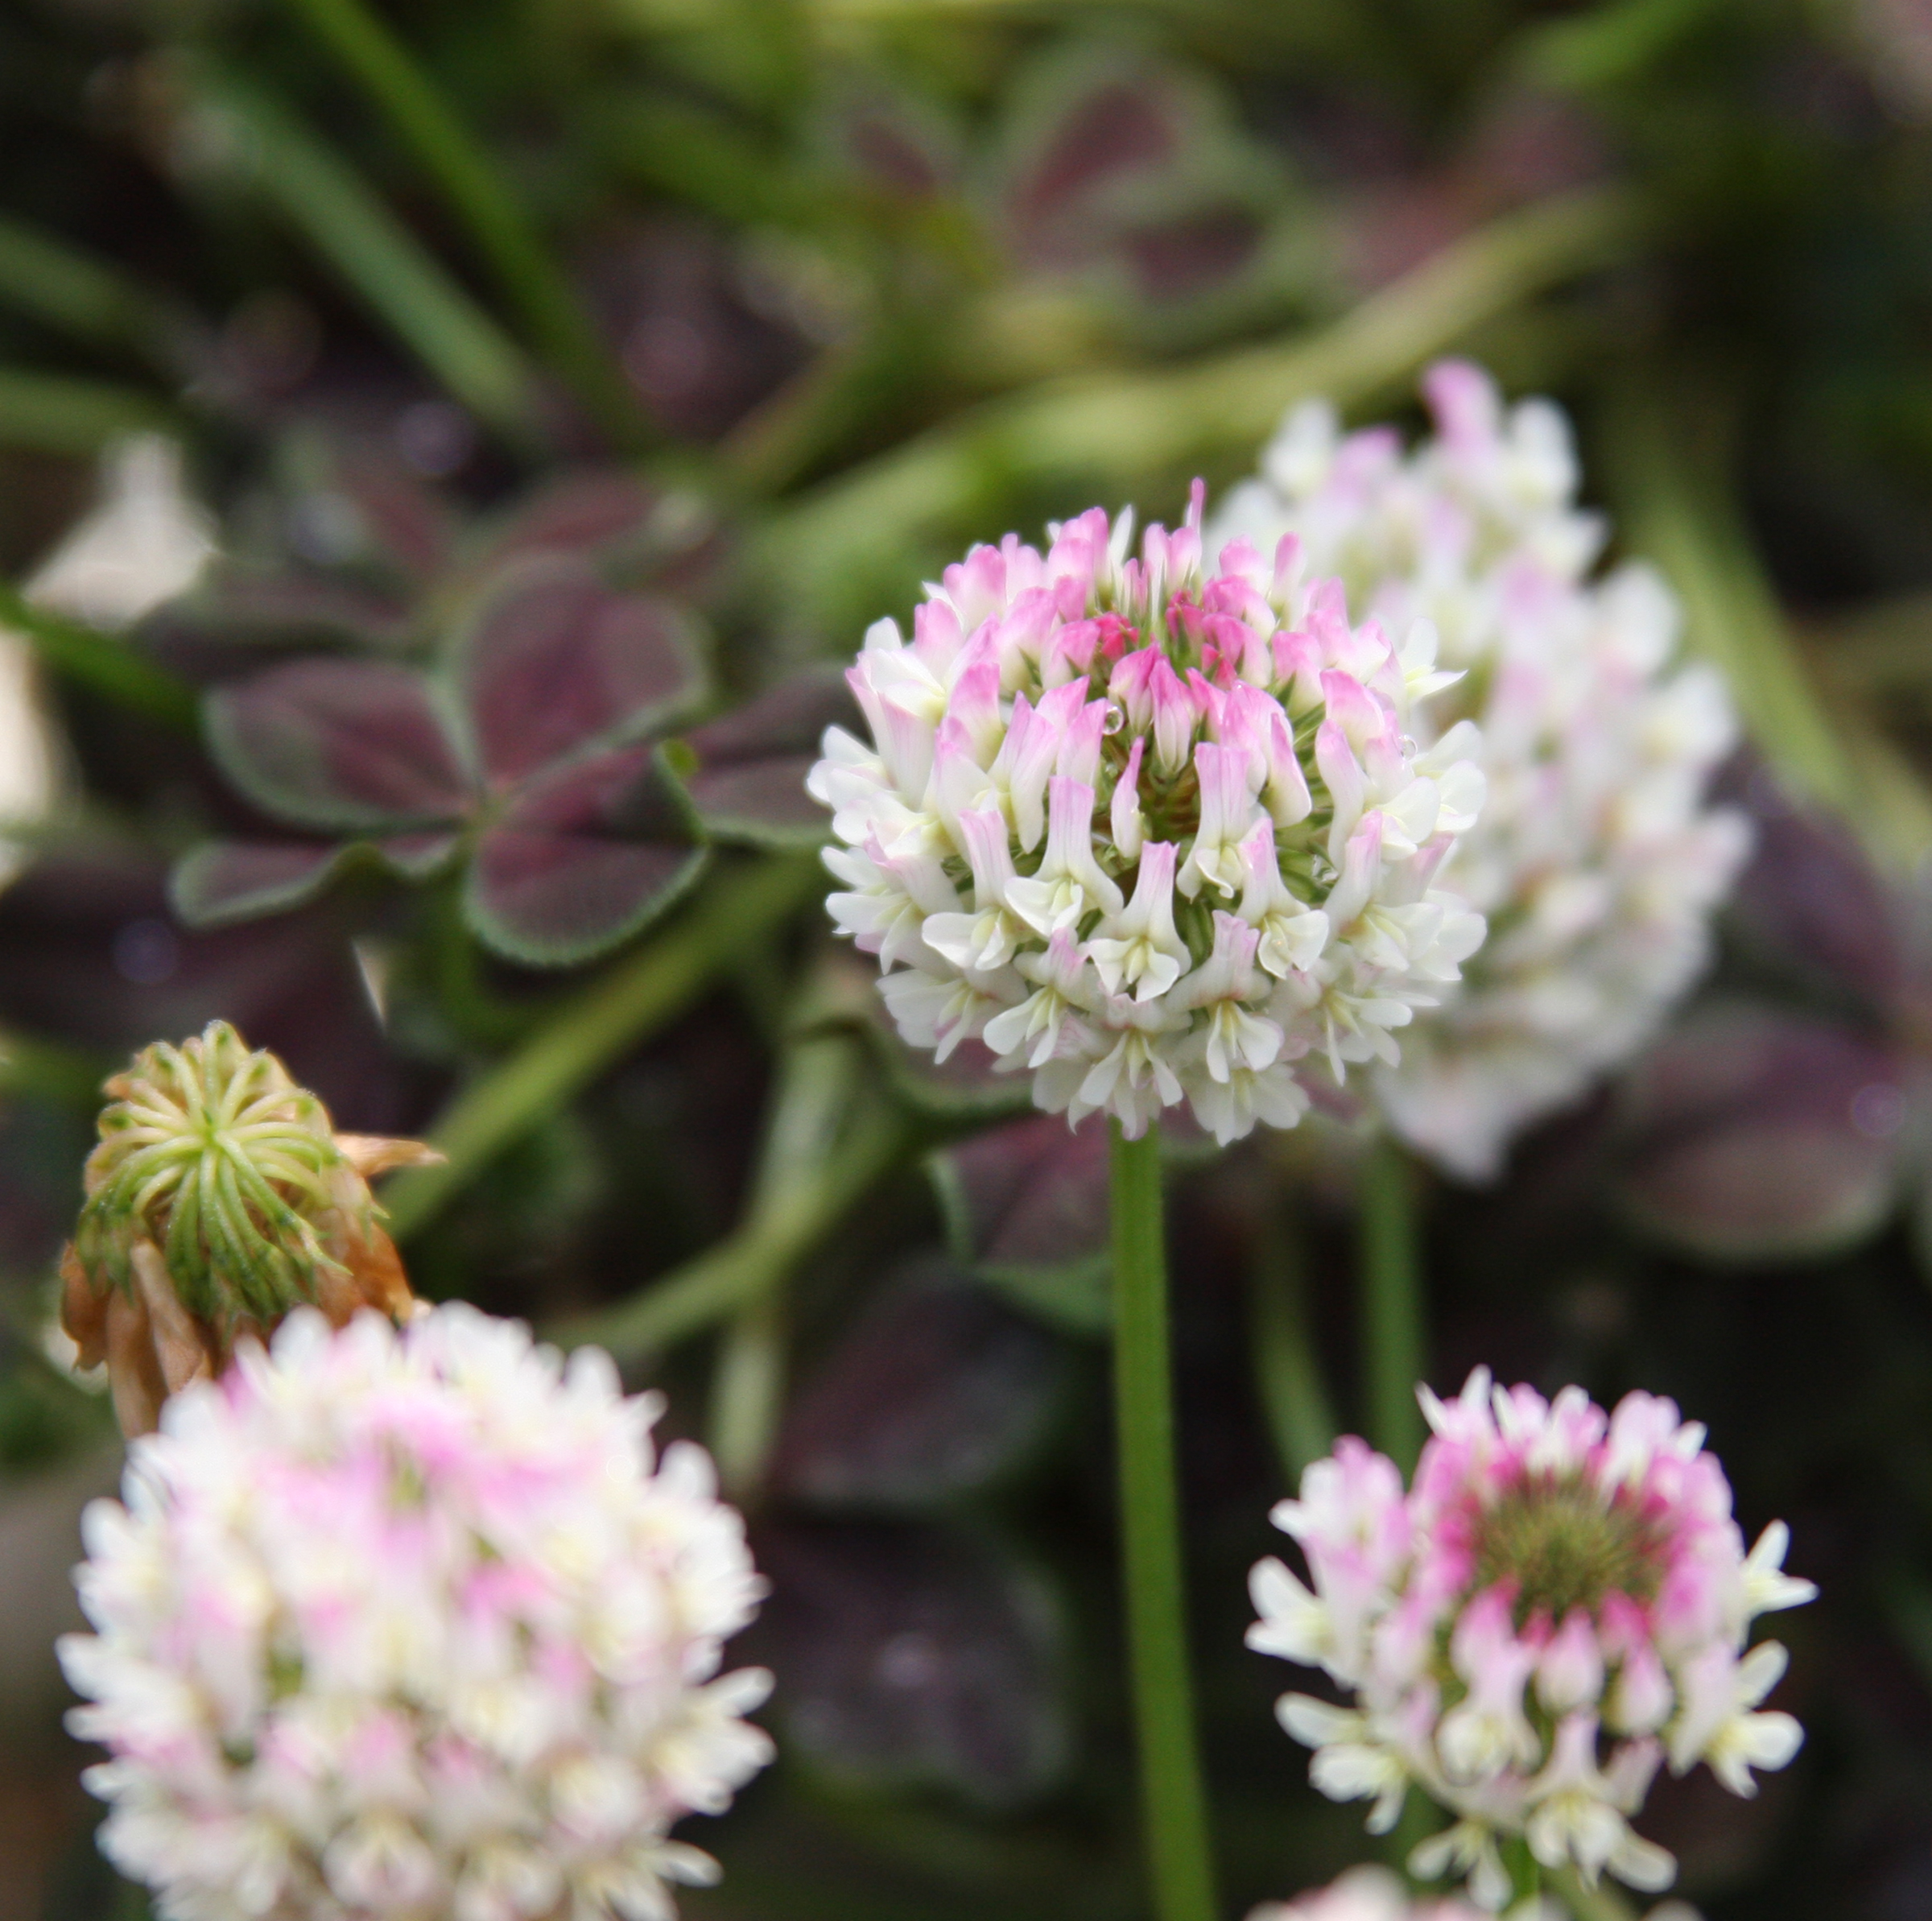 Pink flowers and five-leafed clover sprigs are two of the traits UGA crop and soil scientist Wayne Parrott hopes to breed into future clover plants.